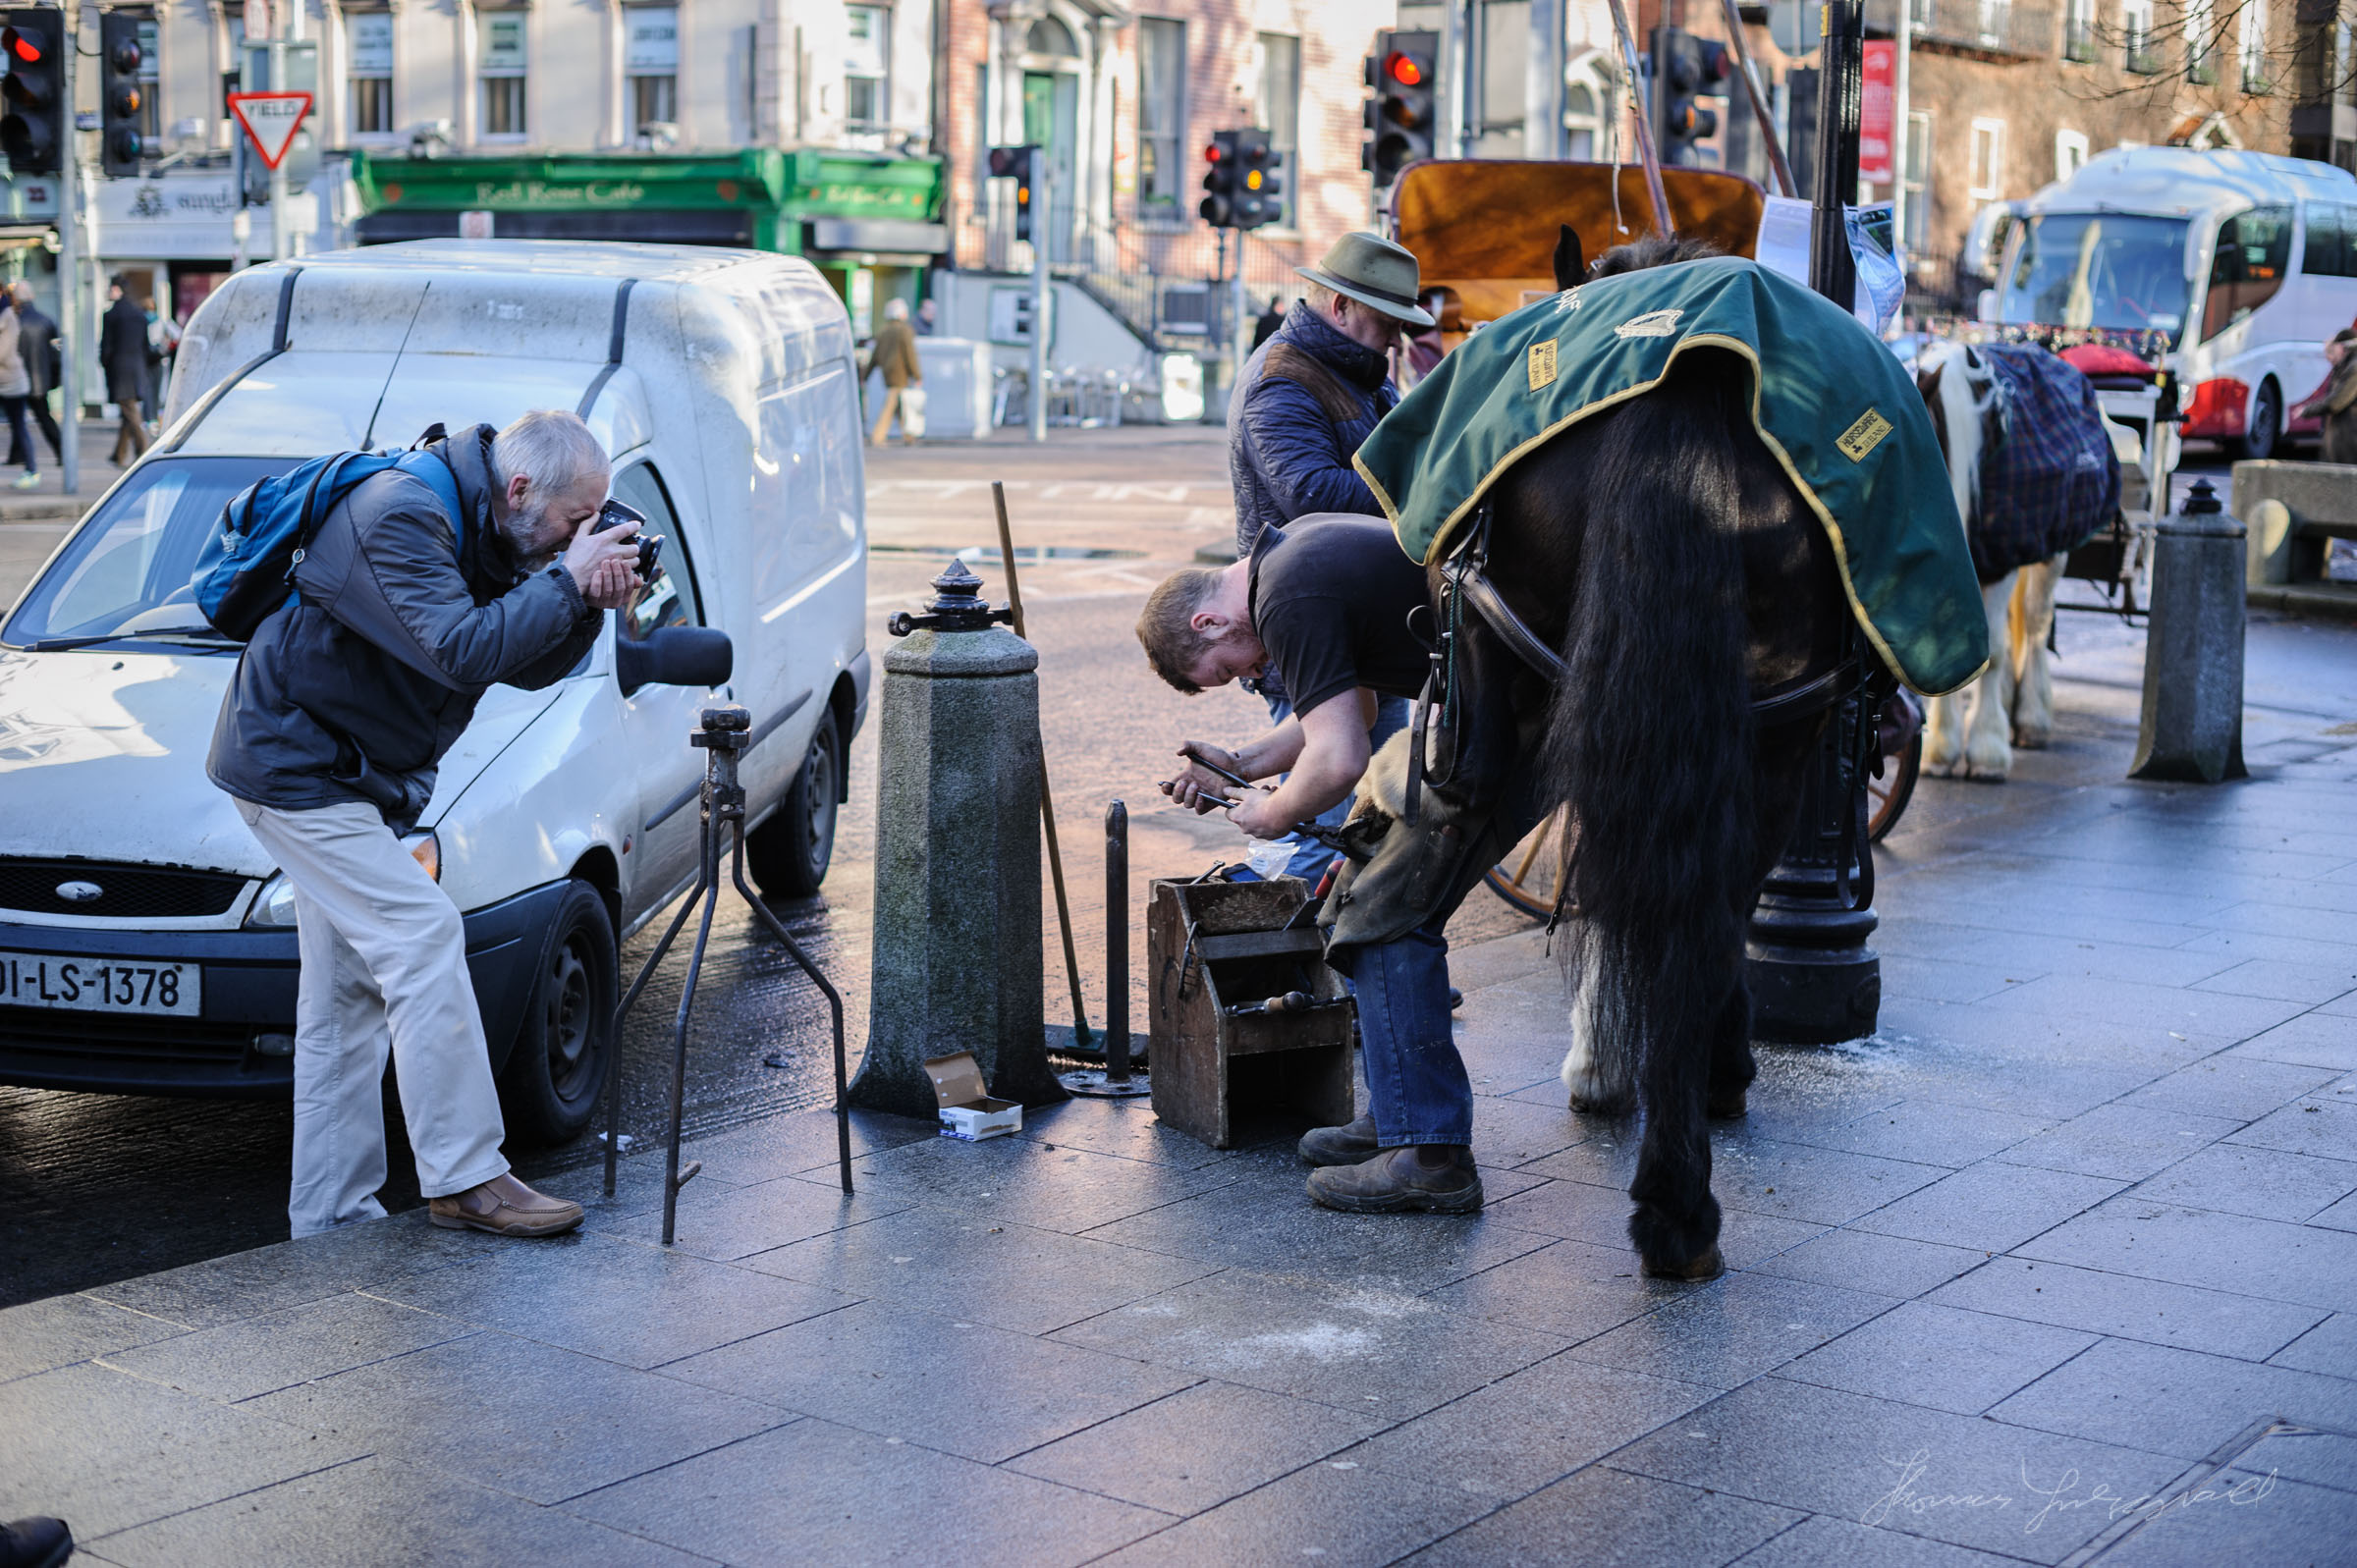 Shoeing a horse on Stephen's Green